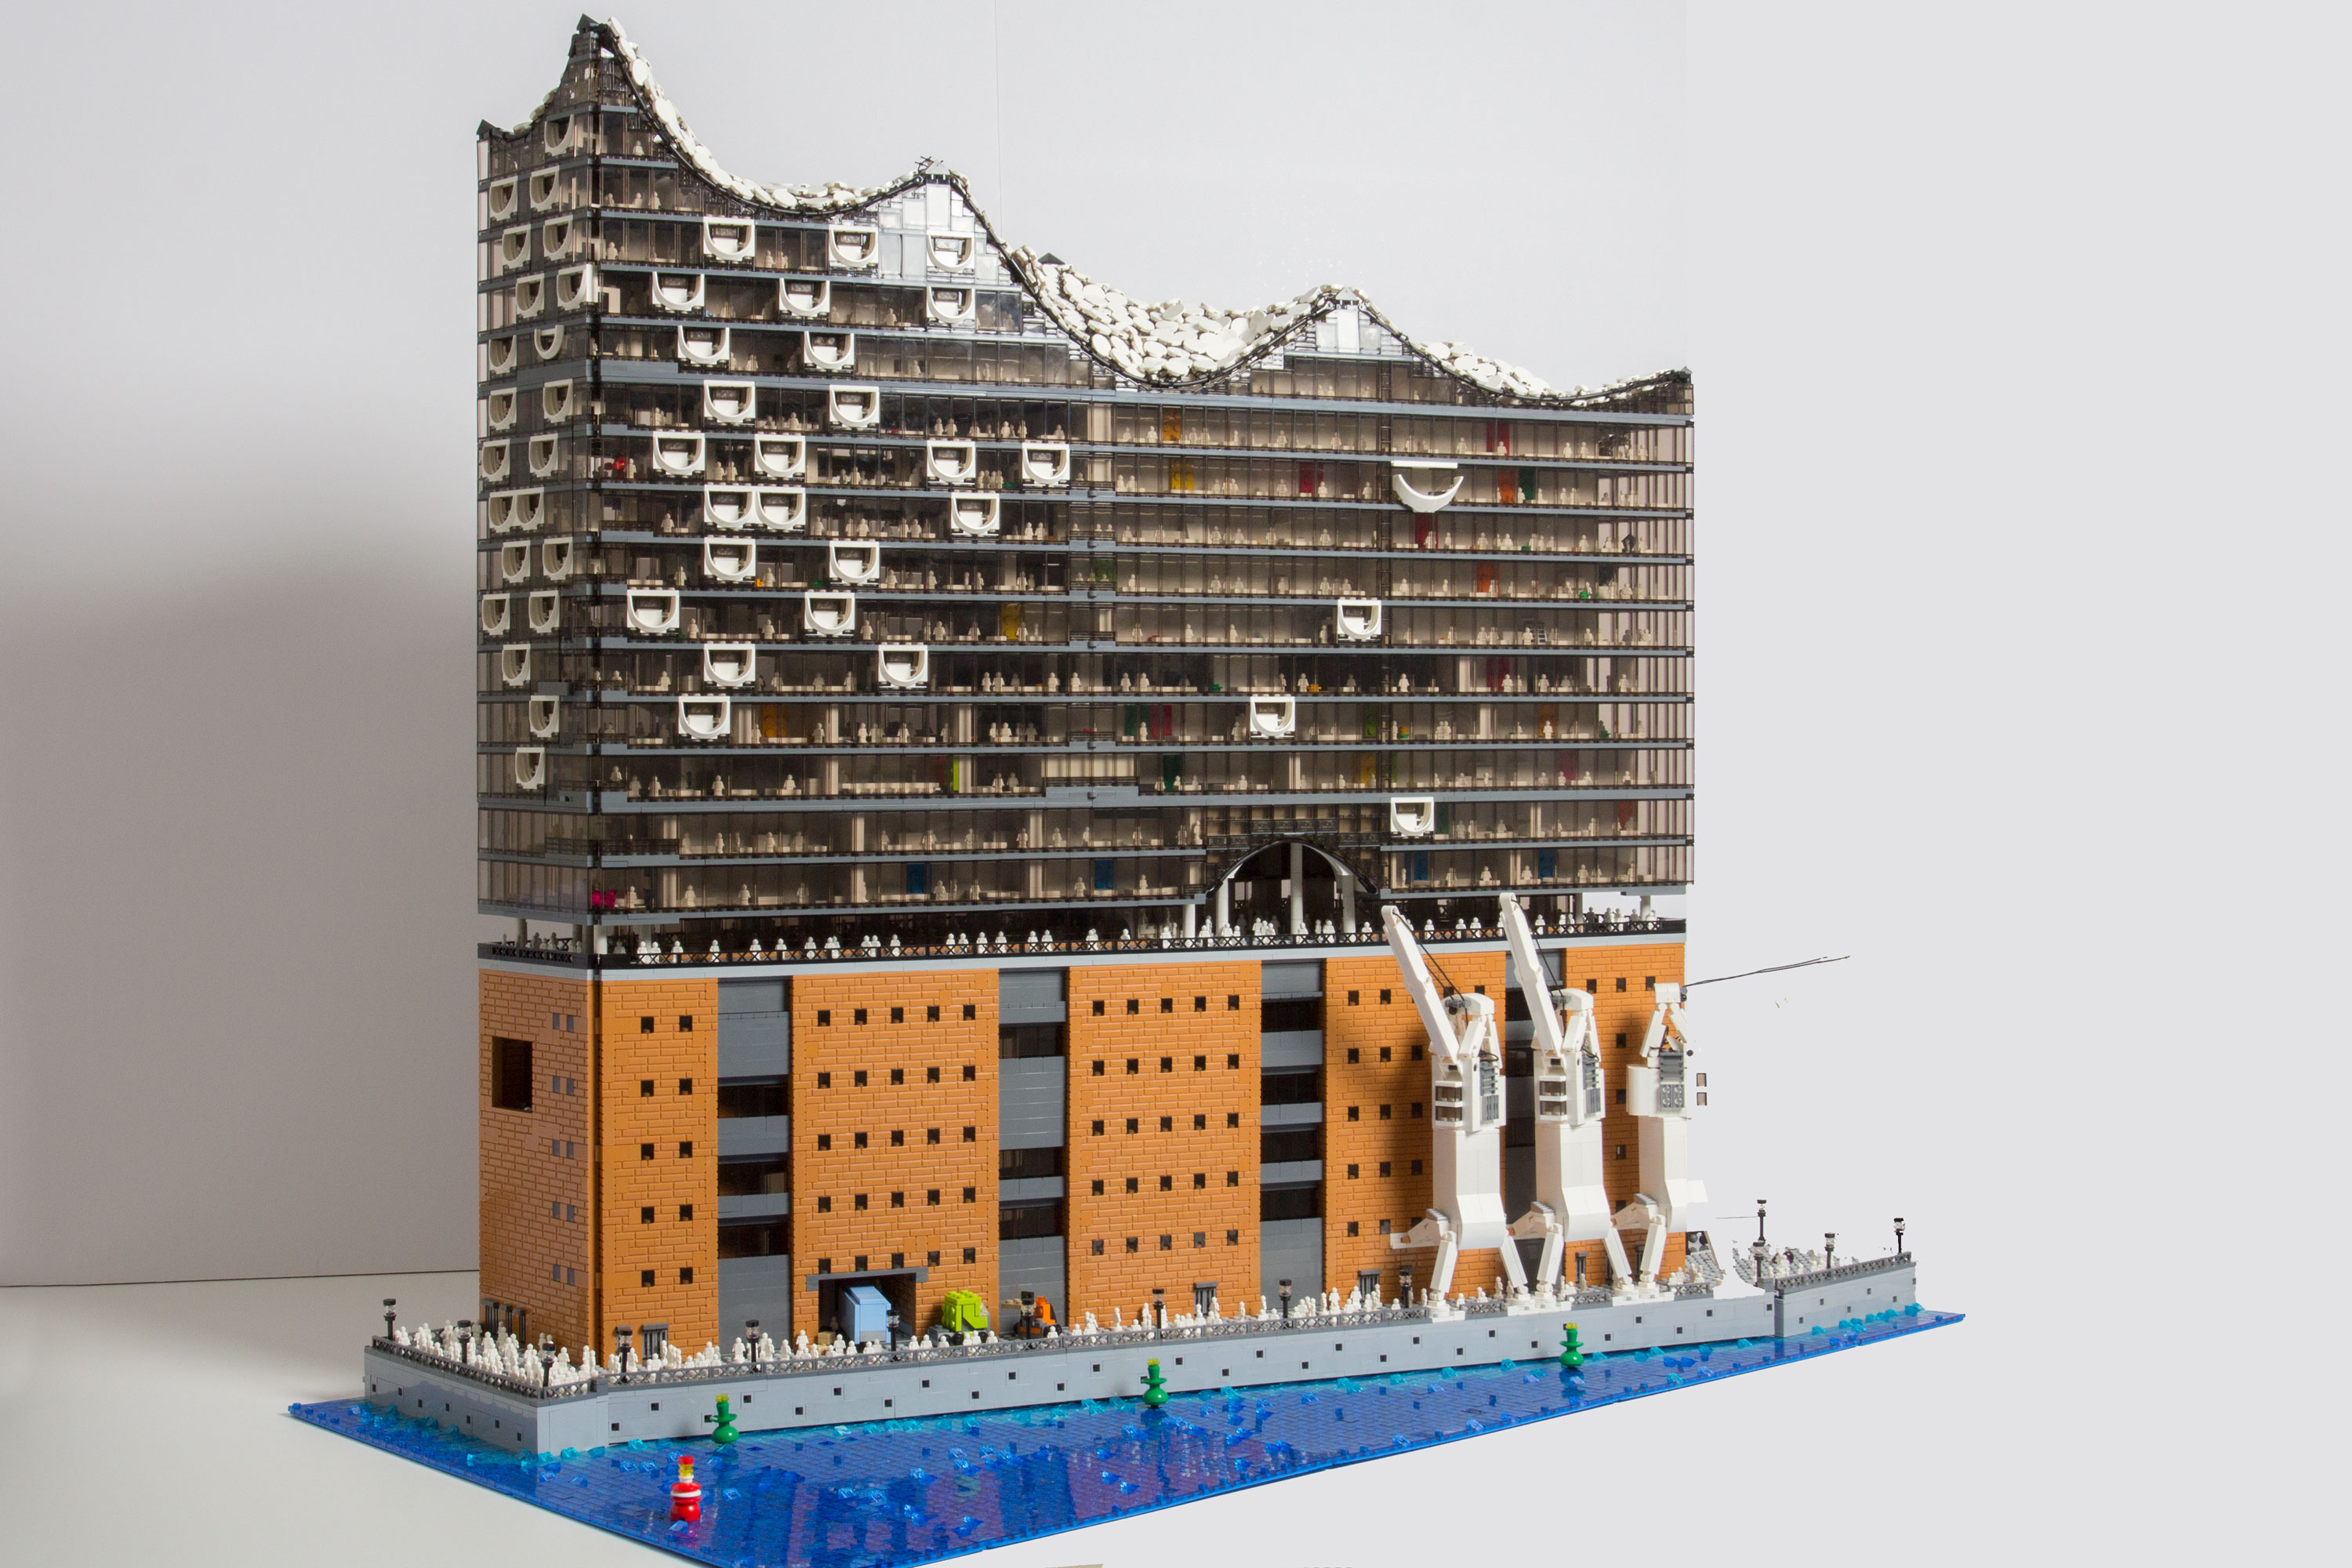 hamburger elbphilharmonie als lego modell. Black Bedroom Furniture Sets. Home Design Ideas